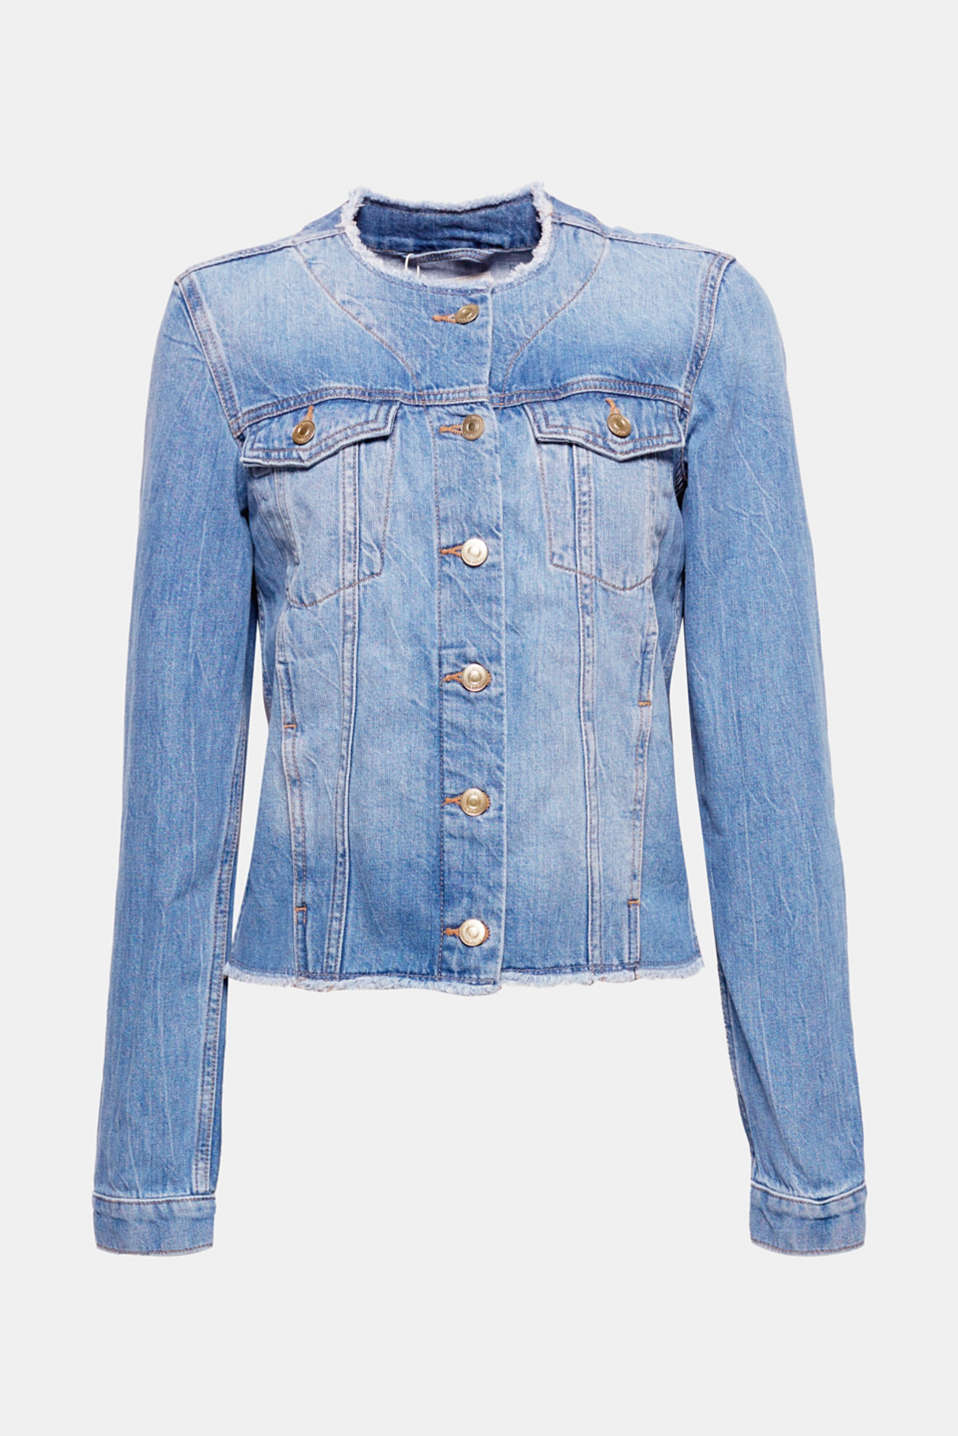 This denim jacket is a versatile must-have basic thanks to the casual look created by a washed finish and fringed edges.